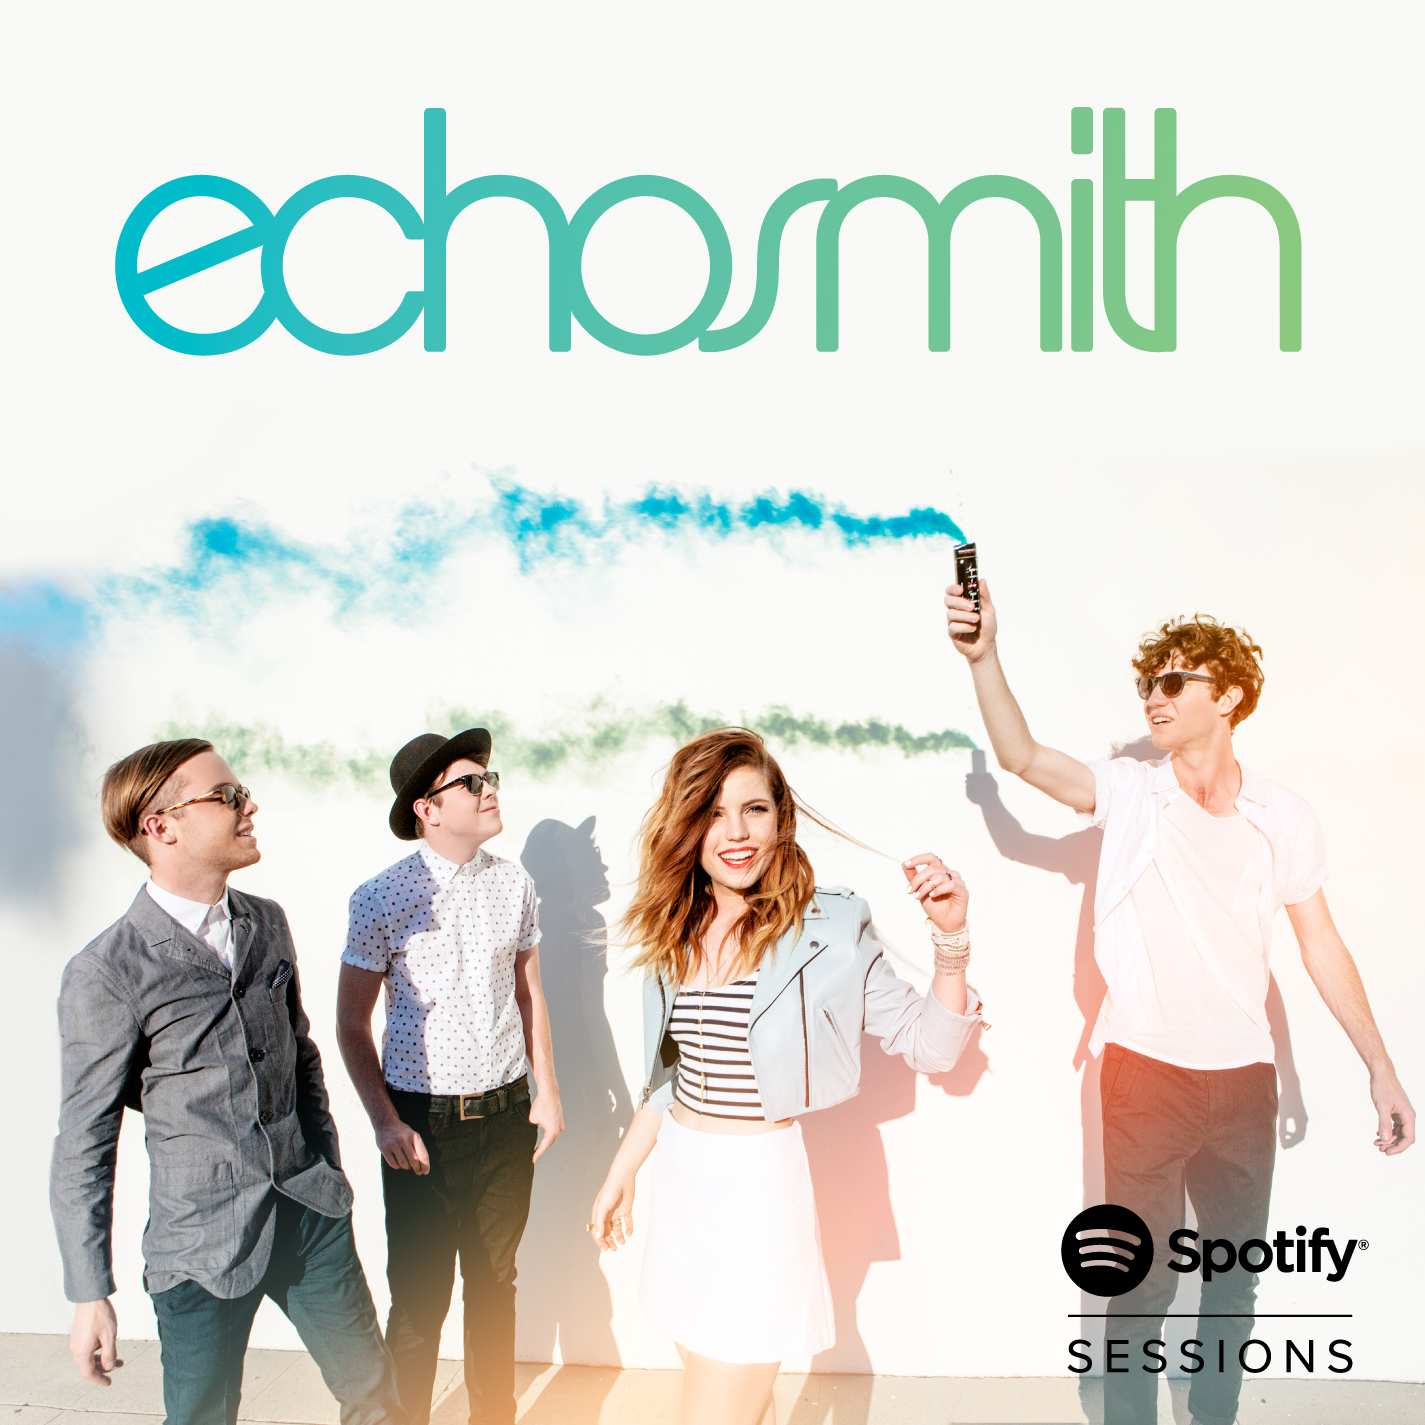 Echosmith's Spotify Sessions